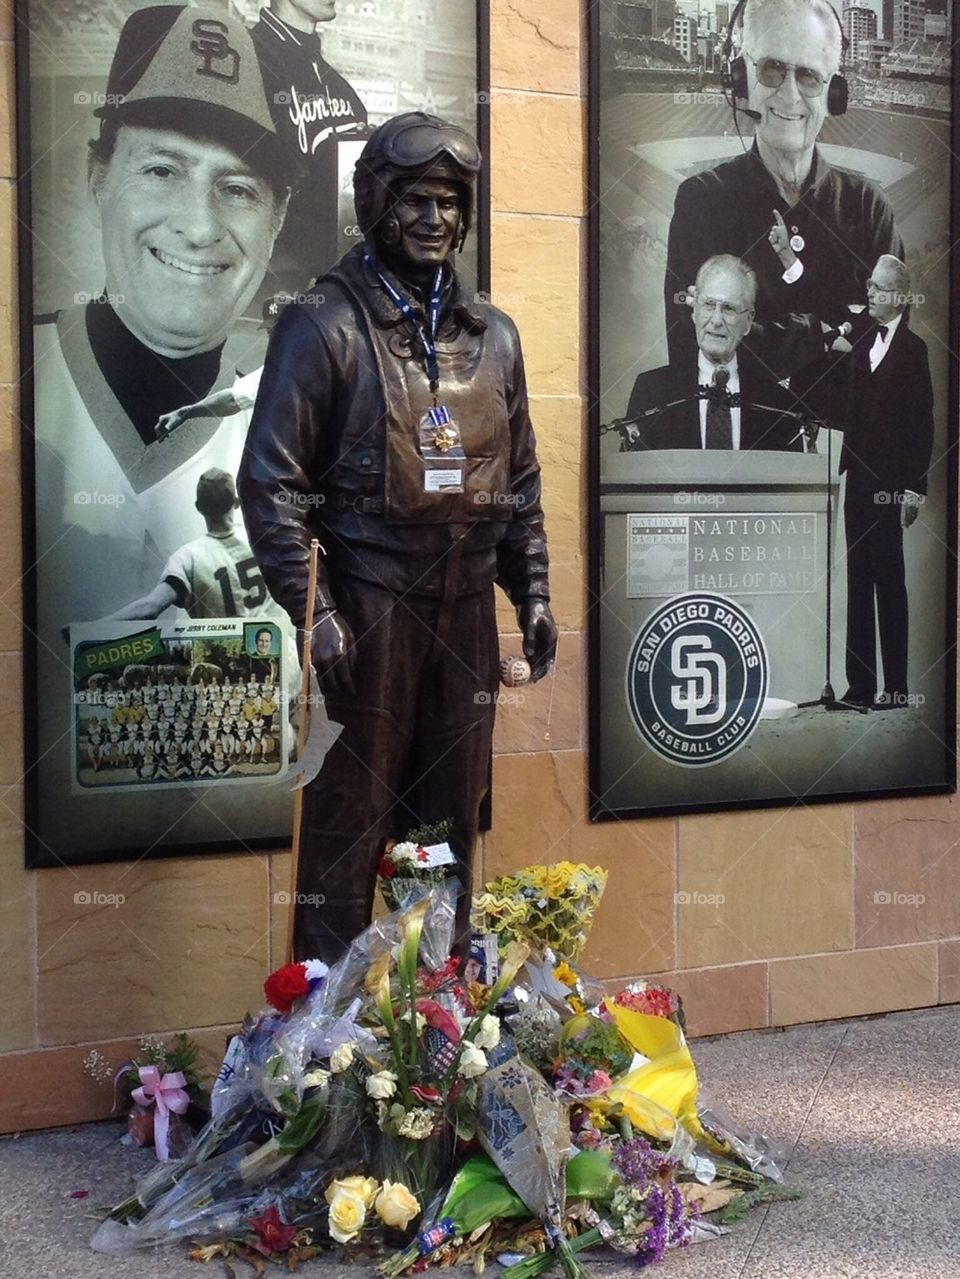 Jerry Coleman statue and memorial